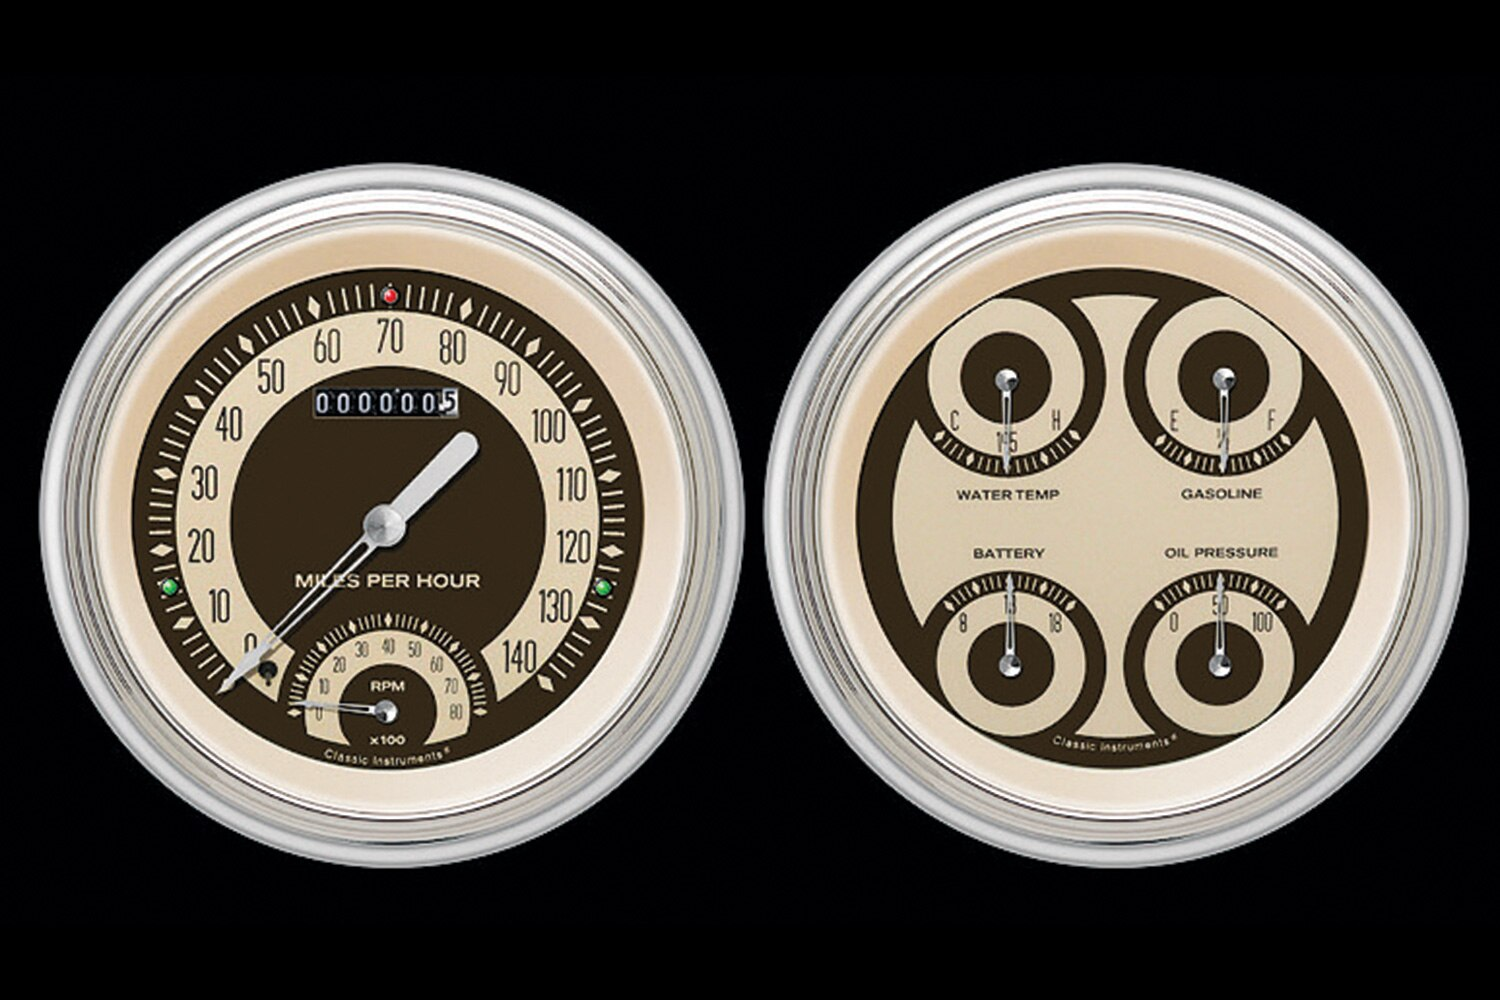 lowrider-new-products-april-2014-classic-instruments-speedtachular-gauge-promo